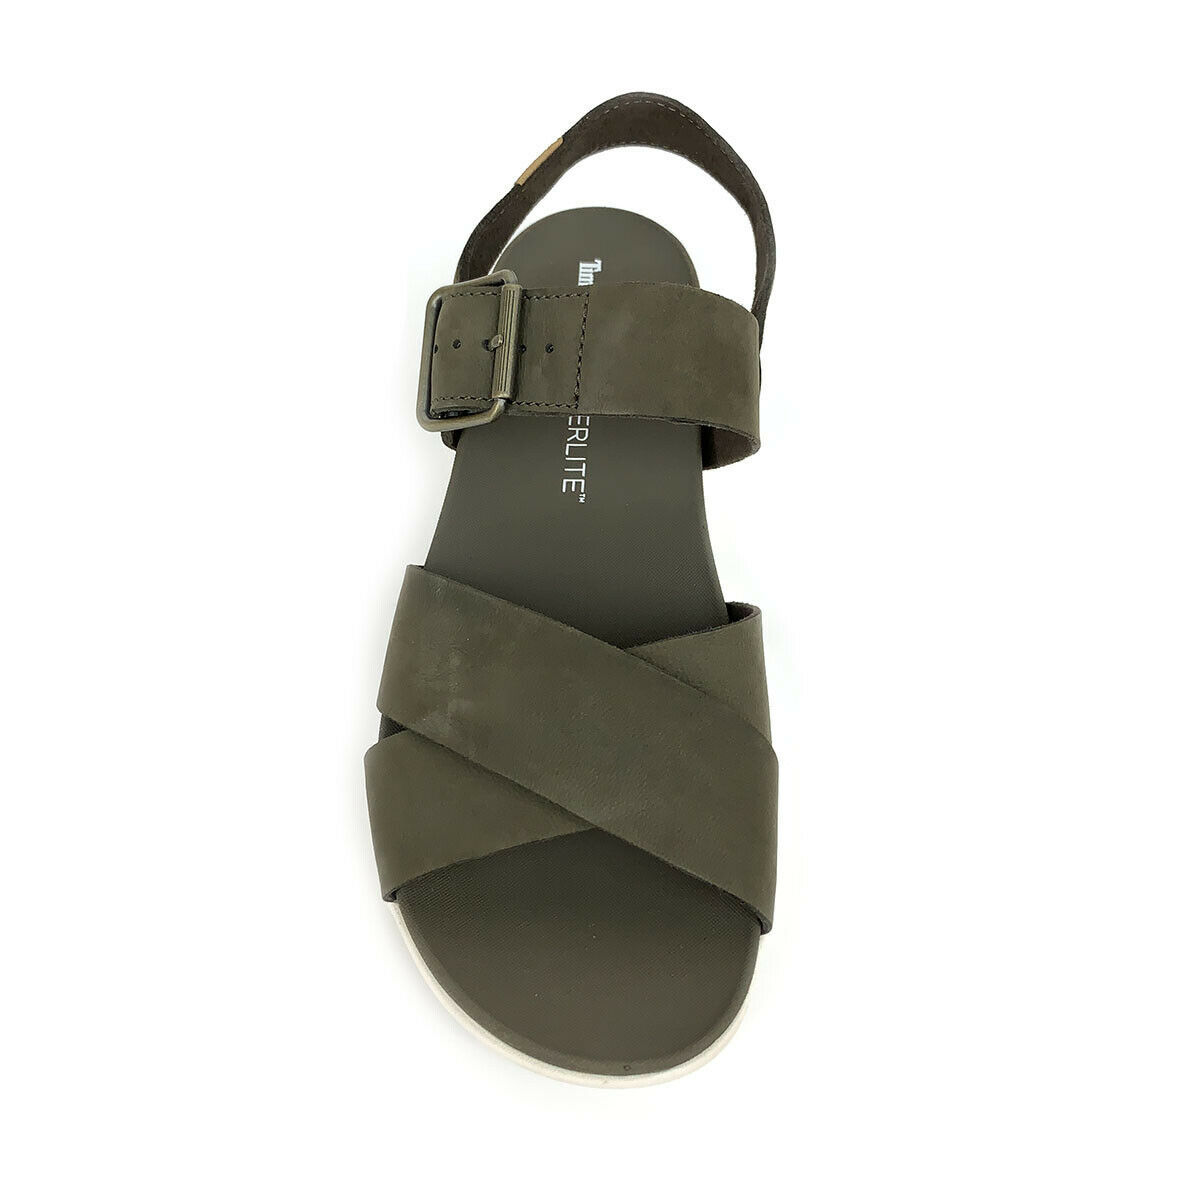 Timberland Women's Wilesport Olive Green Leather Strap Sandals A1TSW image 5